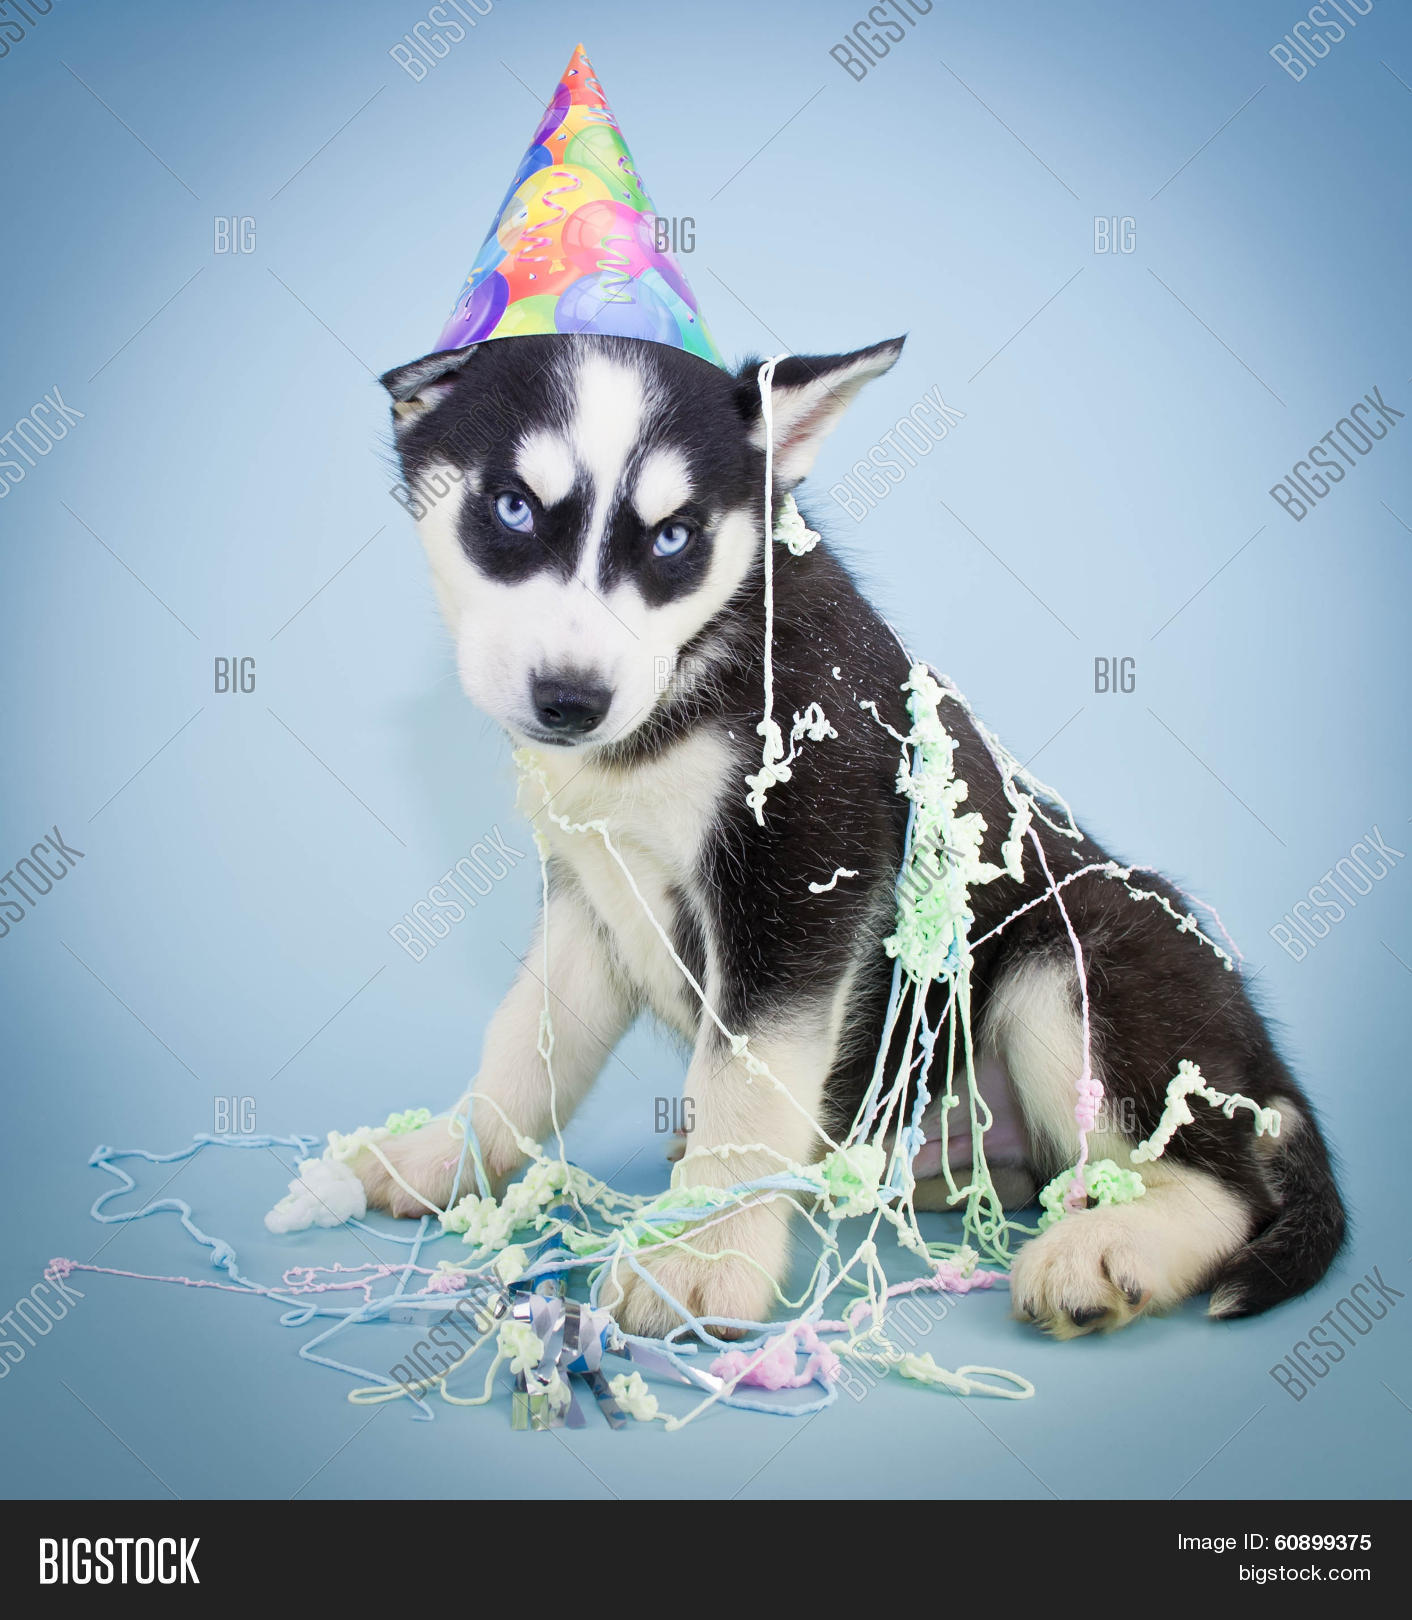 A Very Cute Husky Puppy Wearing Birthday Hat With Silly String All Over Him Sweet Look On His Face